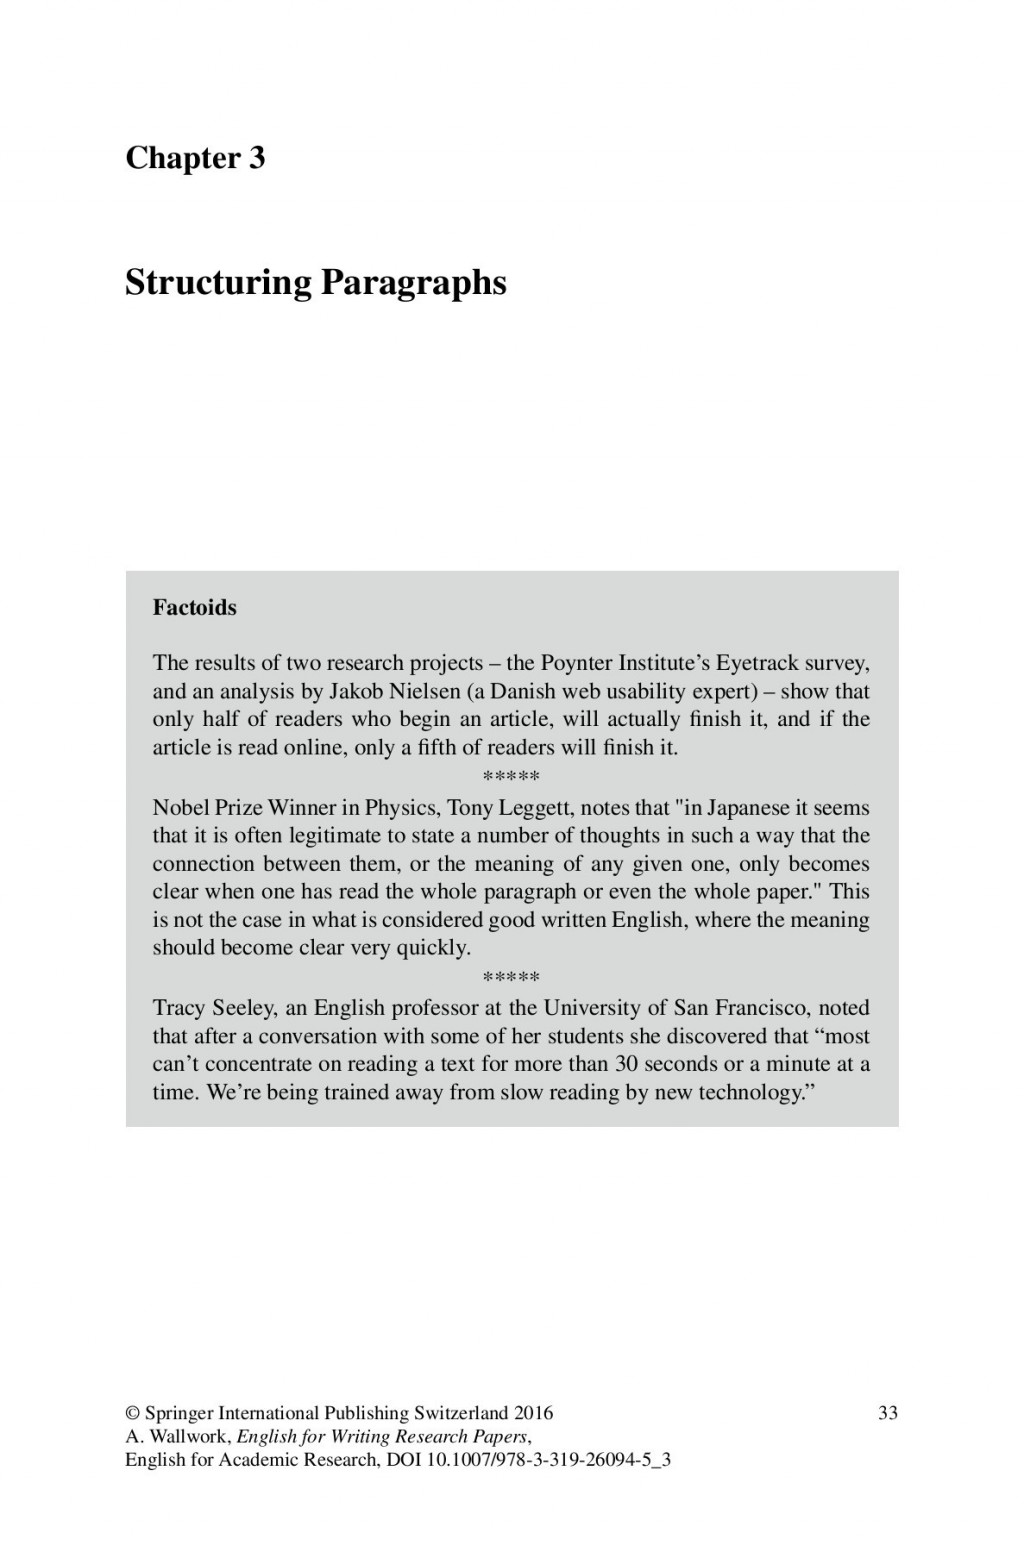 004 Research Paper English For Writing Papers Springer Awesome Pdf Useful Phrases - Large